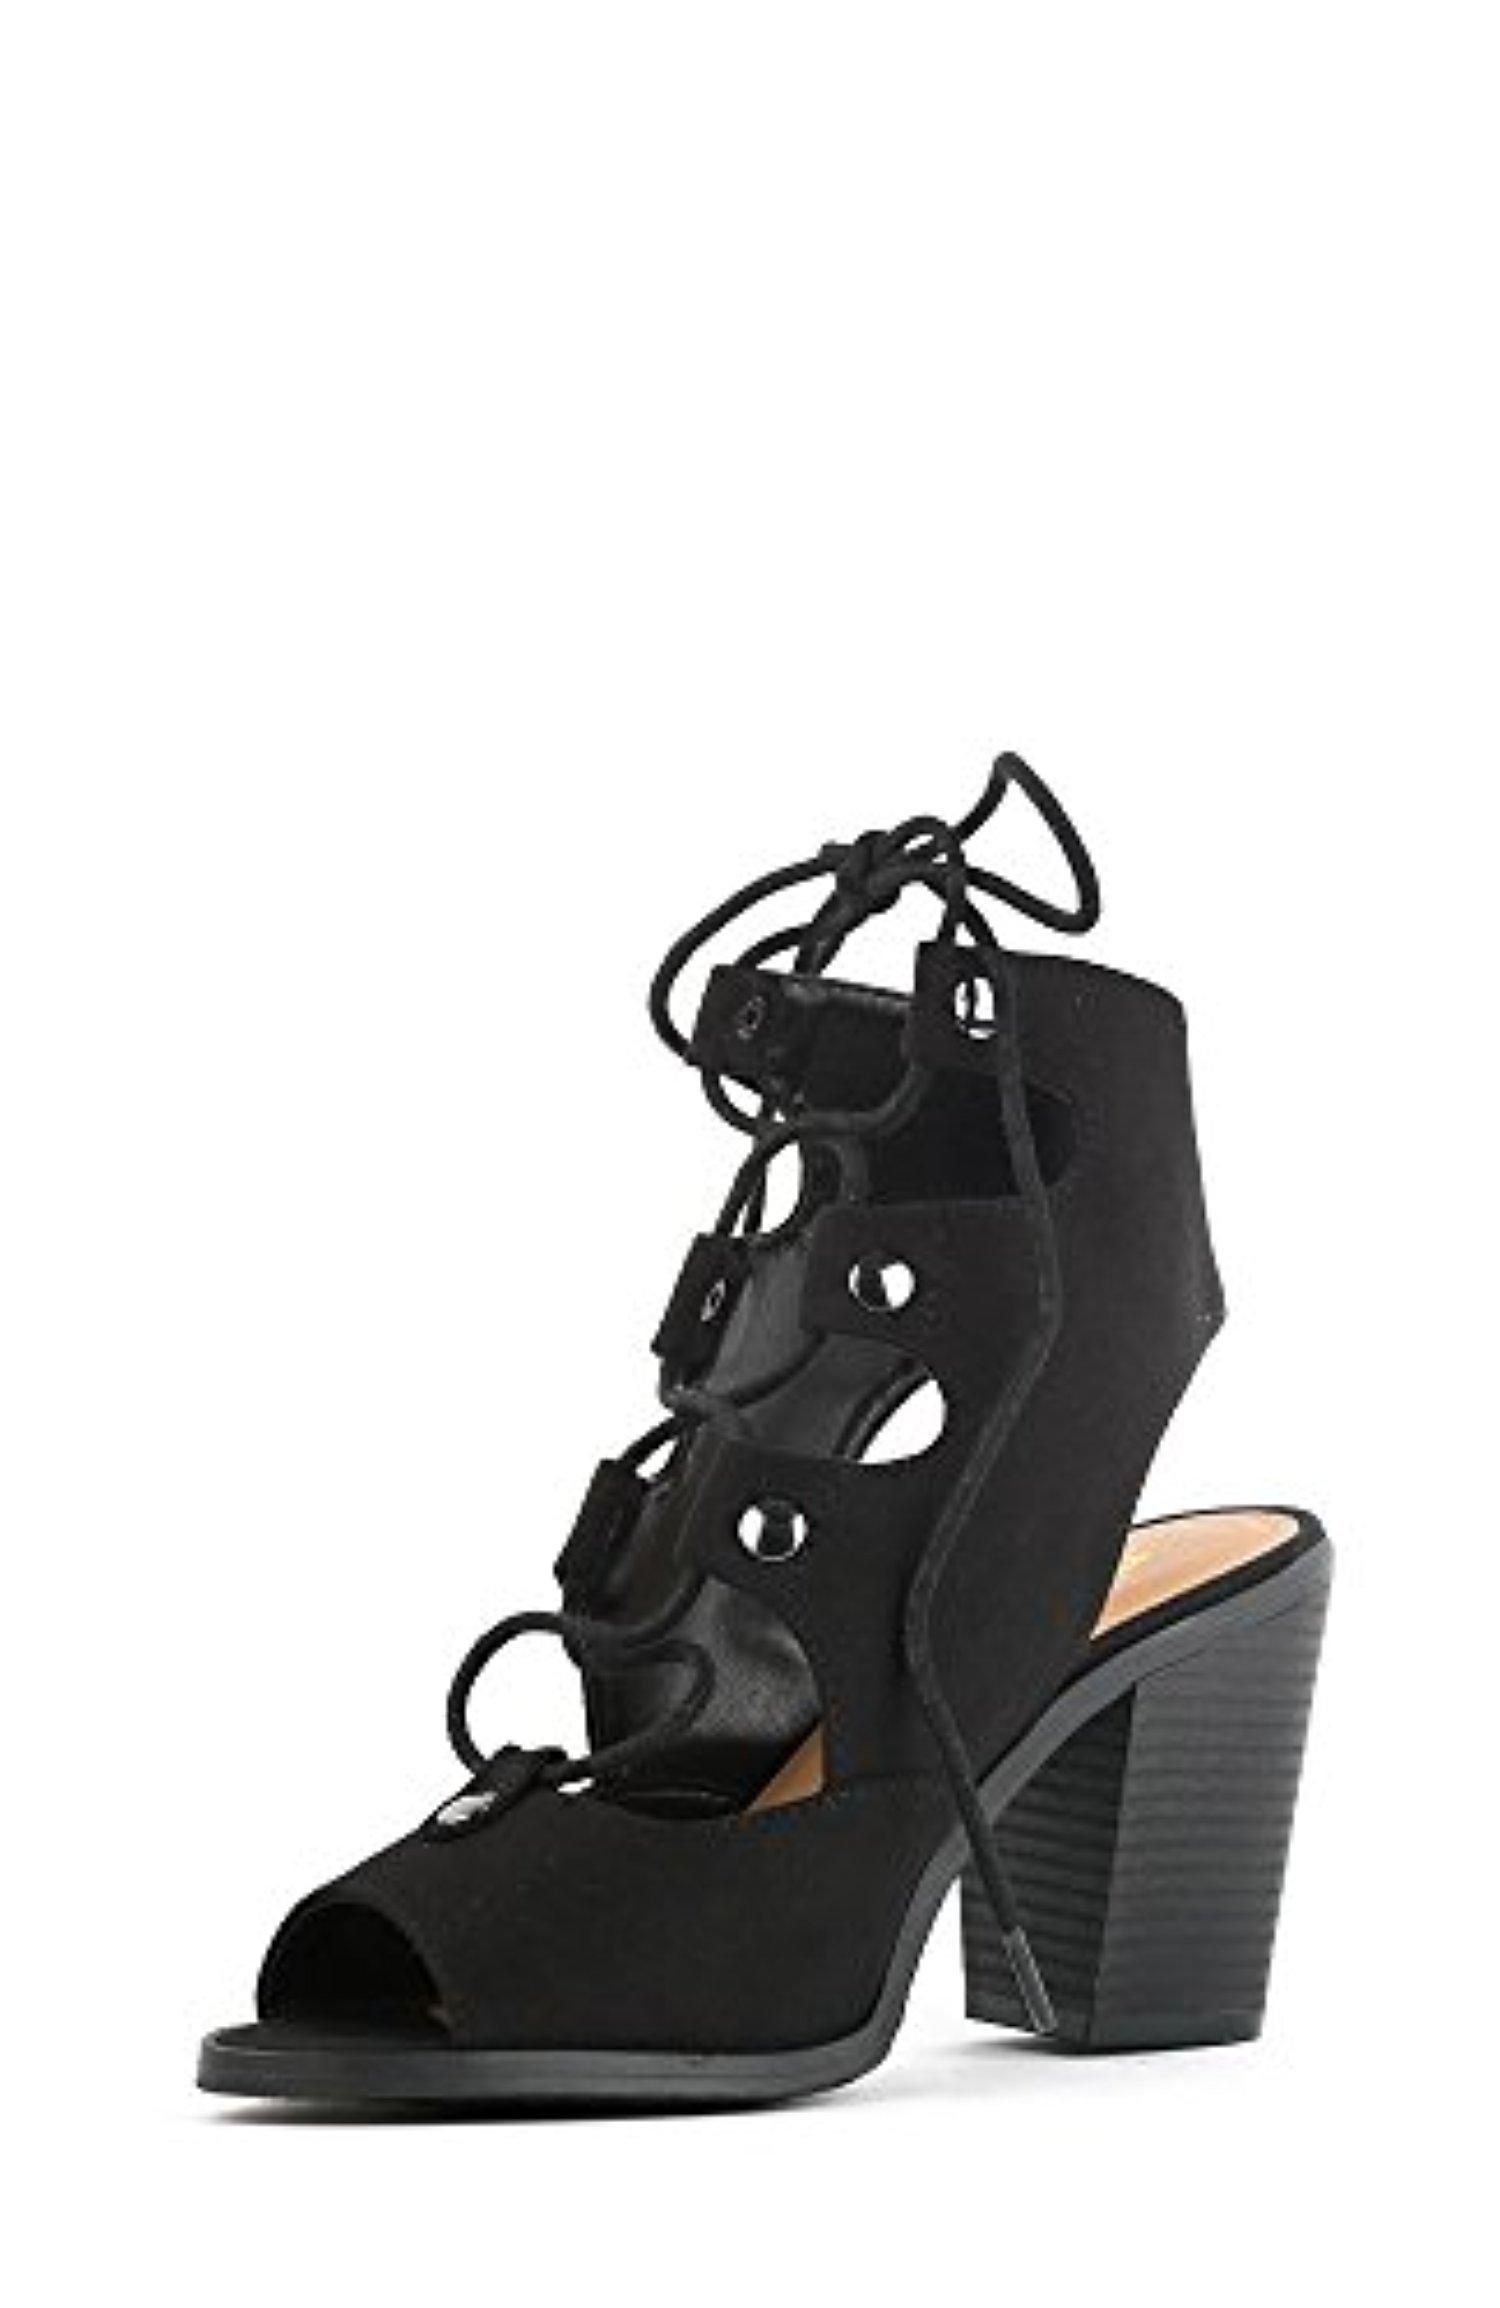 917f6f267c Soda Race Women's Stylish Lace Up Gladiator Cage Low Chunky Block Heel  Sandal - Black Imitation Suede,Black,7.5 - Brought to you by Avarsha.com